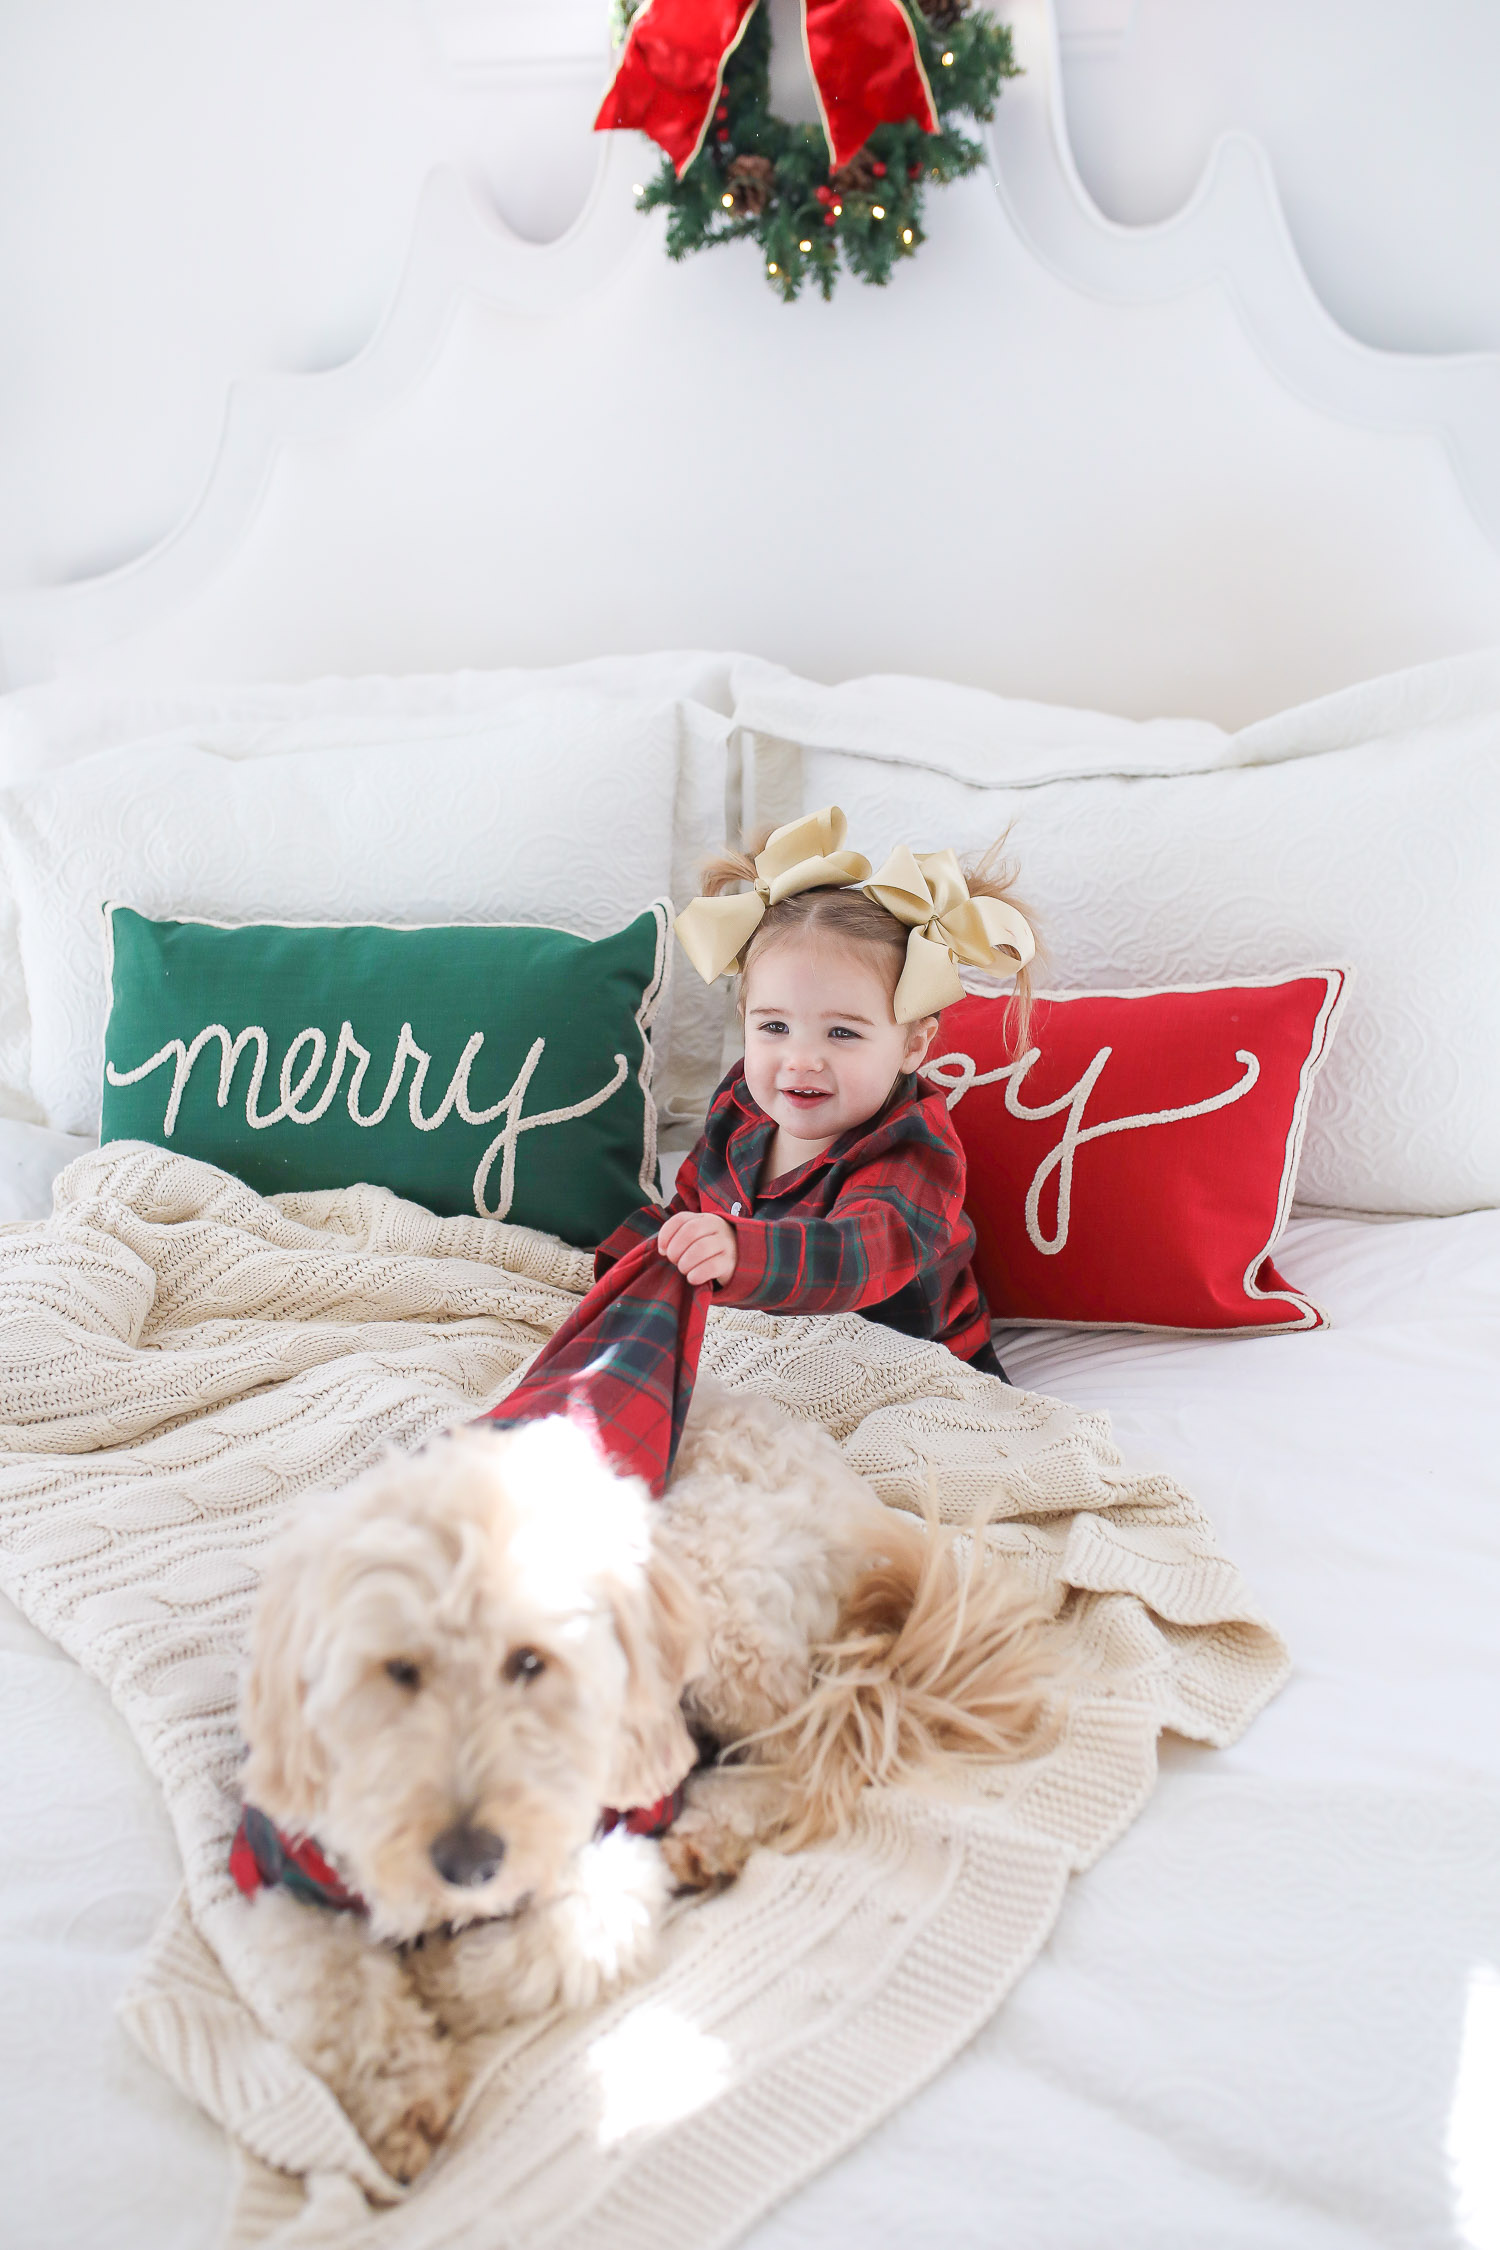 Matching Family Pajamas by popular US fashion blog, The Sweetest Thing: image of a young girl and her dog sitting on a bed with white bedding, a joy throw pillow, a merry throw pillow and a mini Christmas wreath hanging on the headboard and wearing a The Company Store Family Flannel Company Cotton™ Girls' Sleepshirt and The Company Store Family Flannel Company Cotton™ Dog Pajamas.